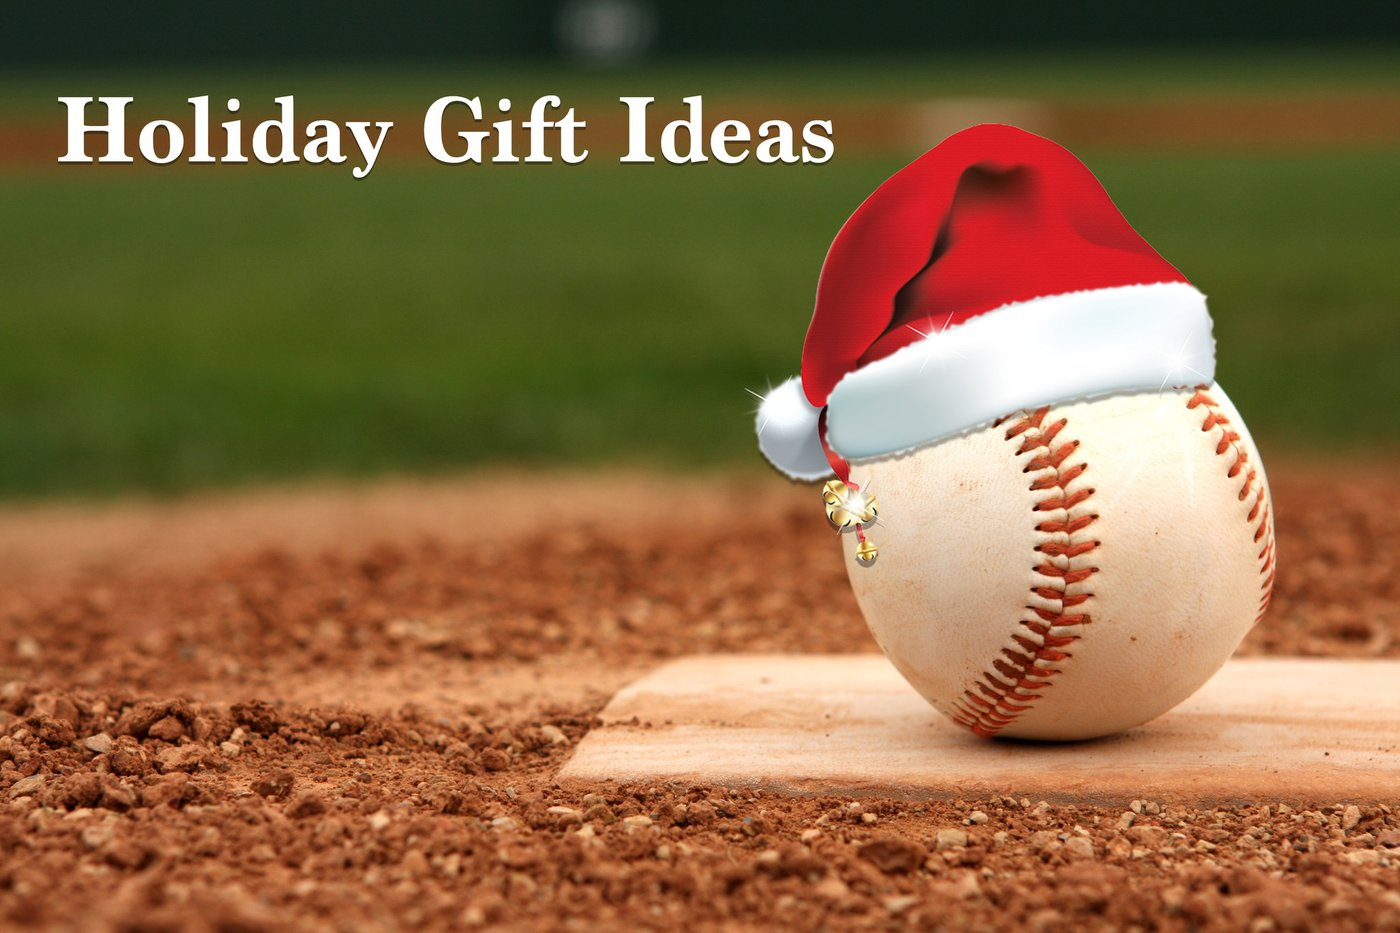 Holiday Gift Ideas for Baseball or Softball Player In Your Life